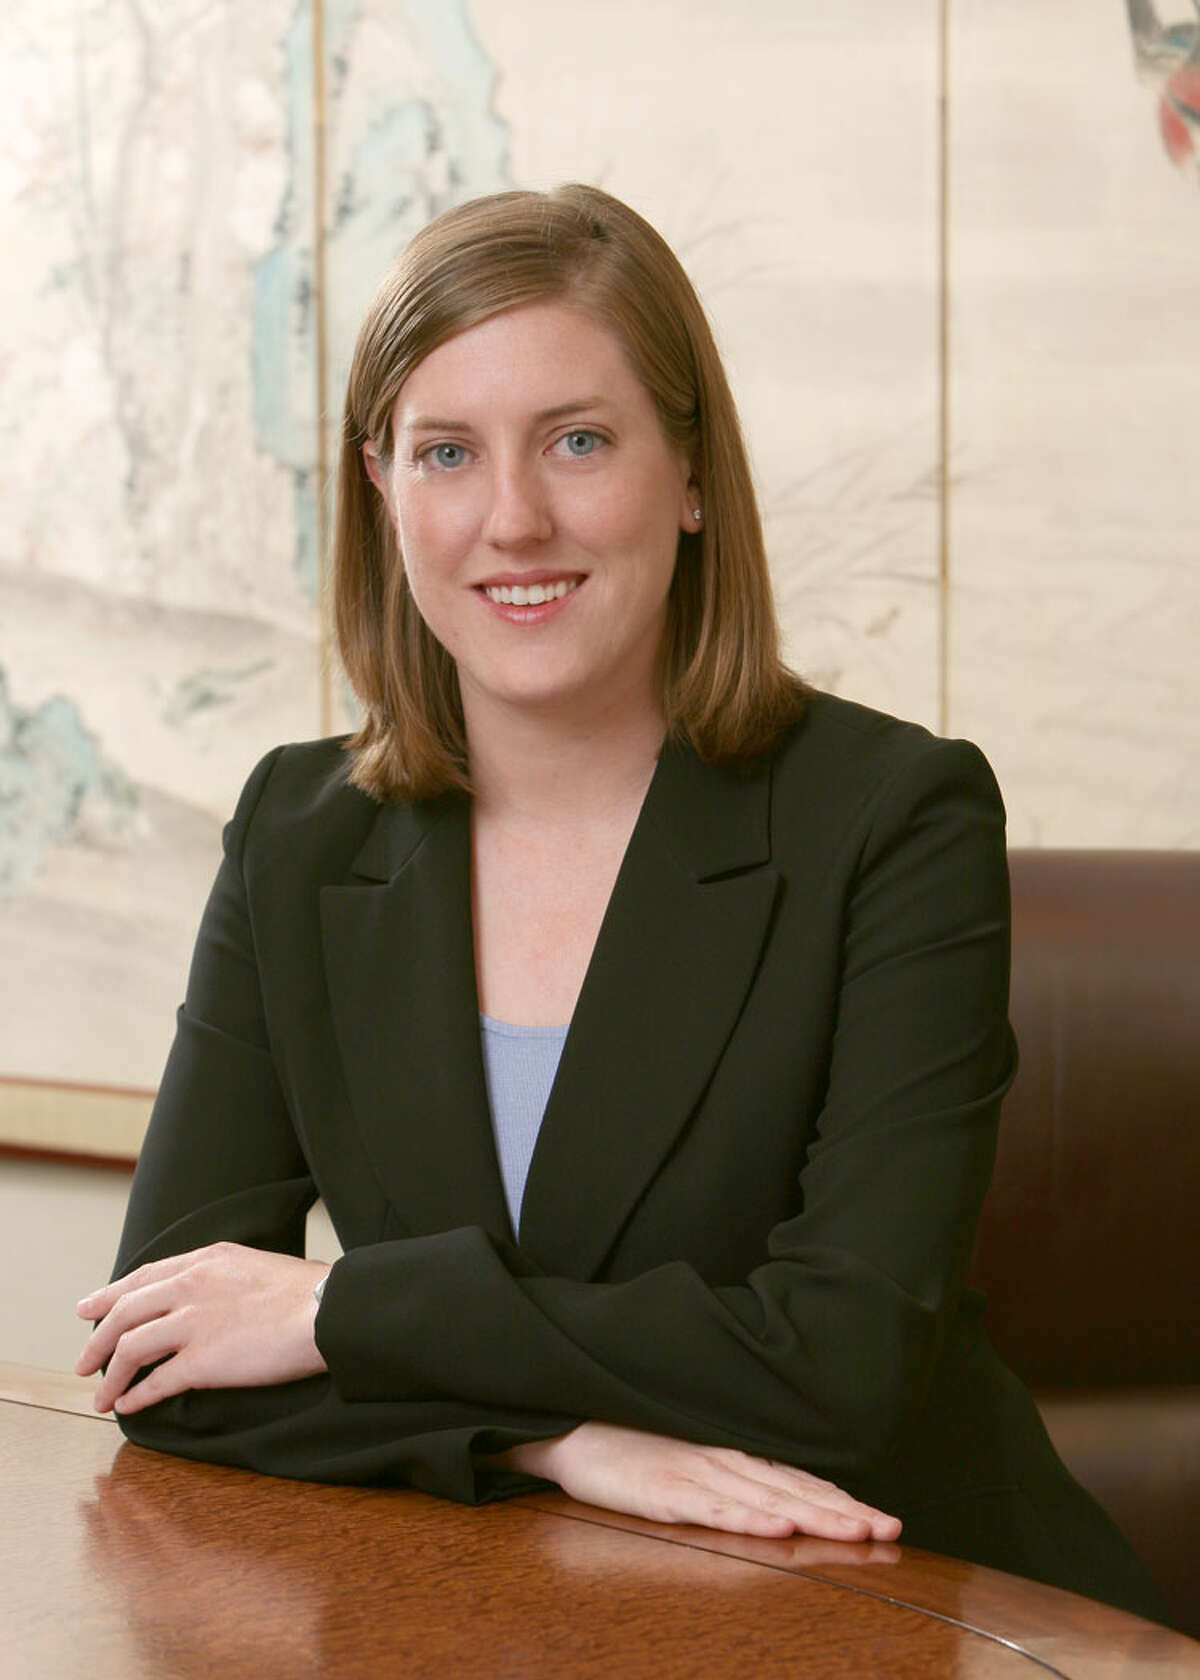 Jones Day has named Kelly H. Turner as a partner. Turner, an attorney in the capital markets practice, practices in the areas of corporate finance, corporate governance, and securities laws.